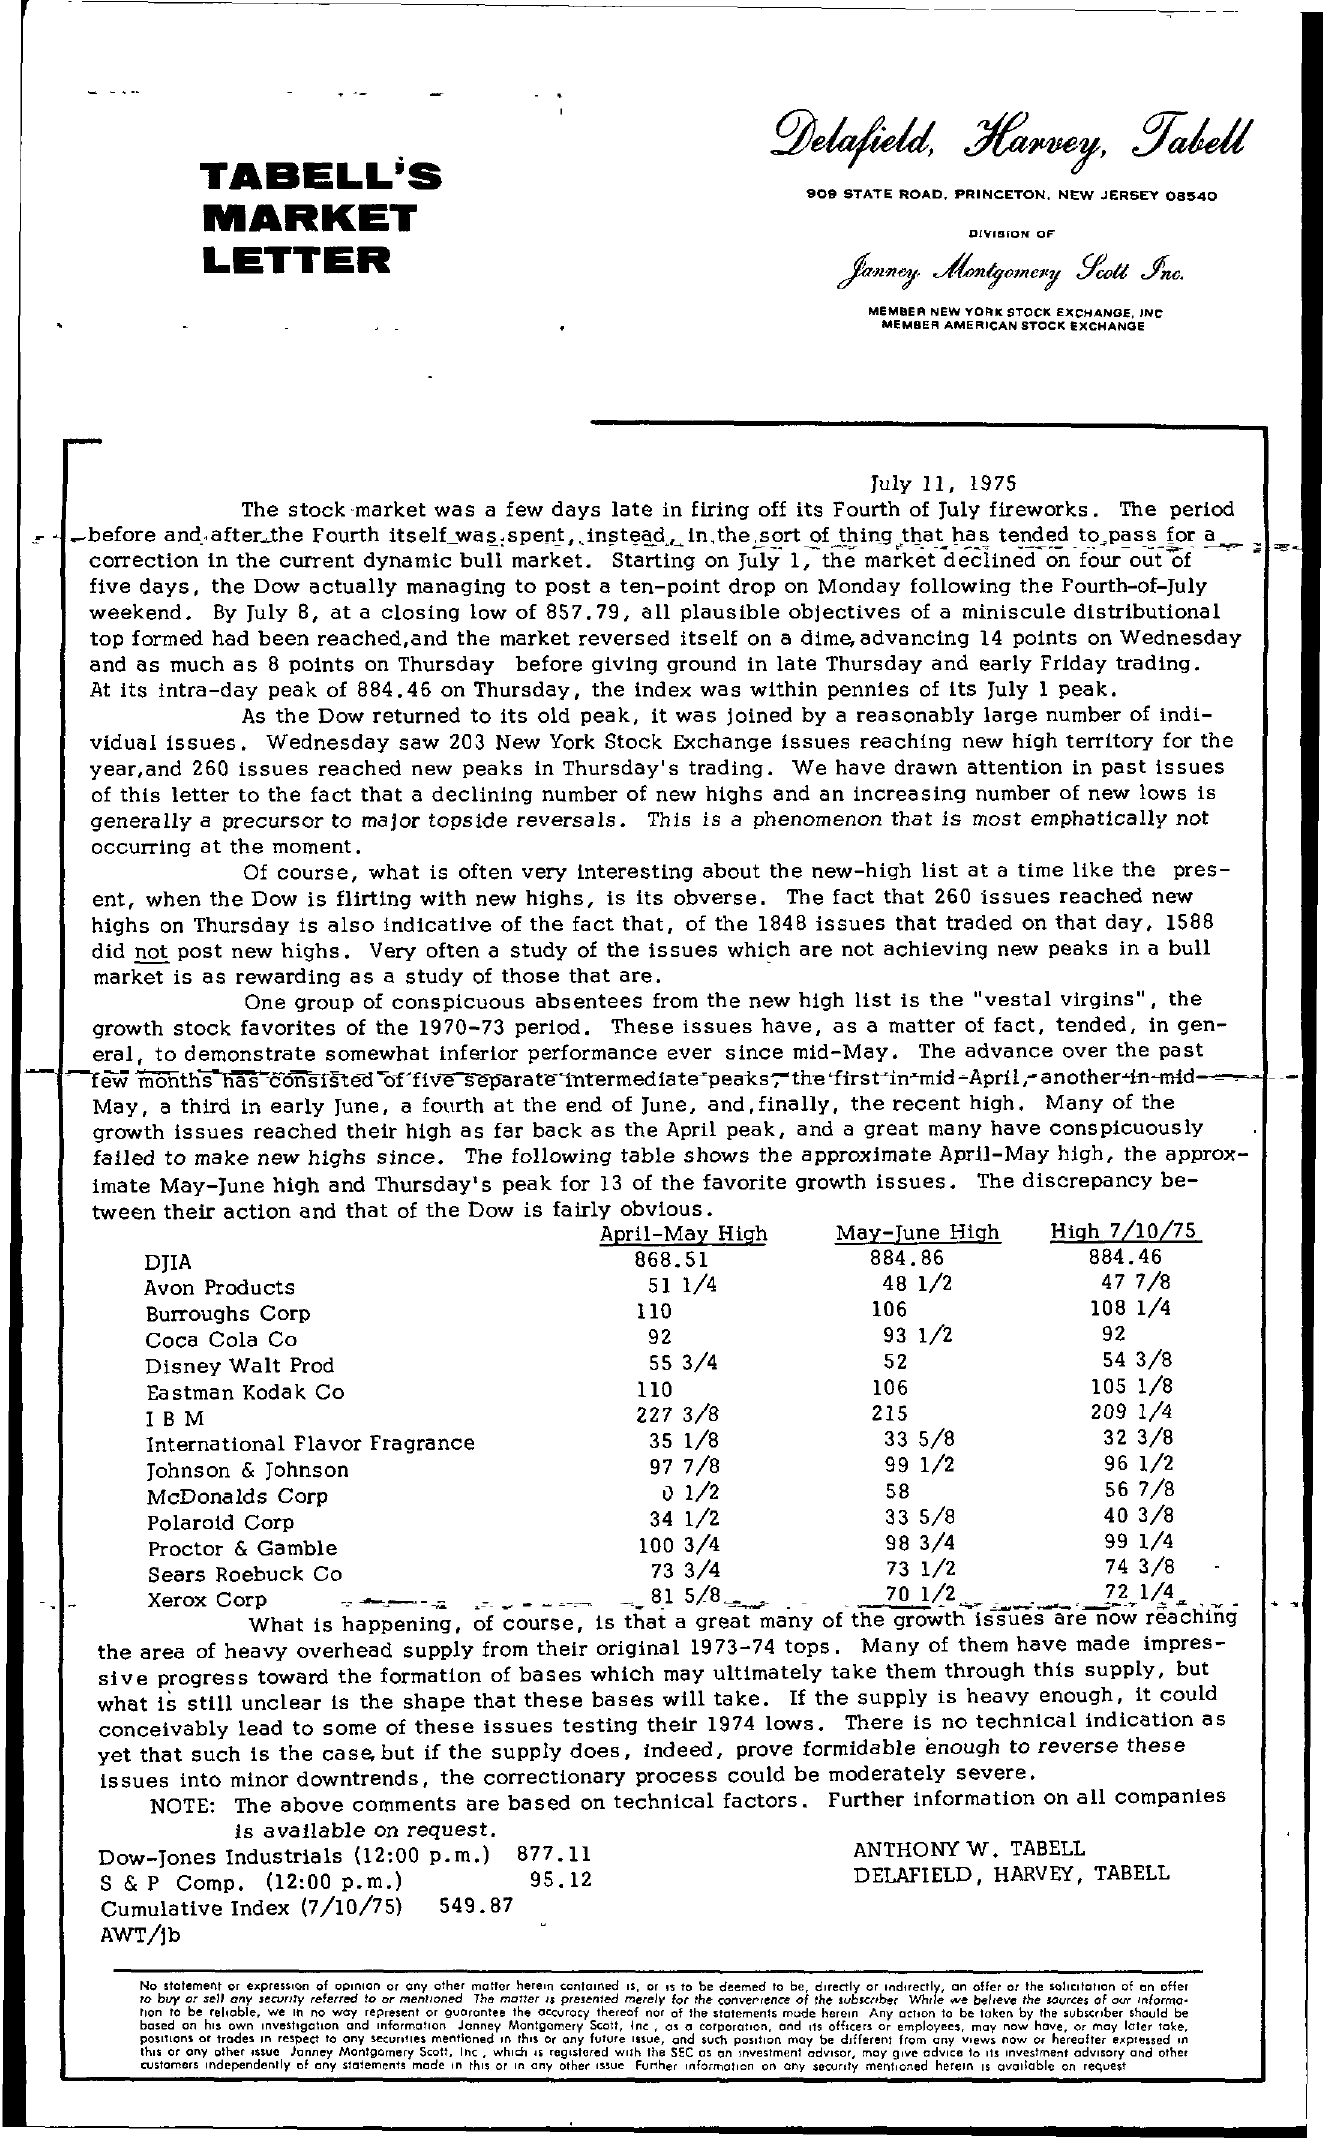 Tabell's Market Letter - July 11, 1975